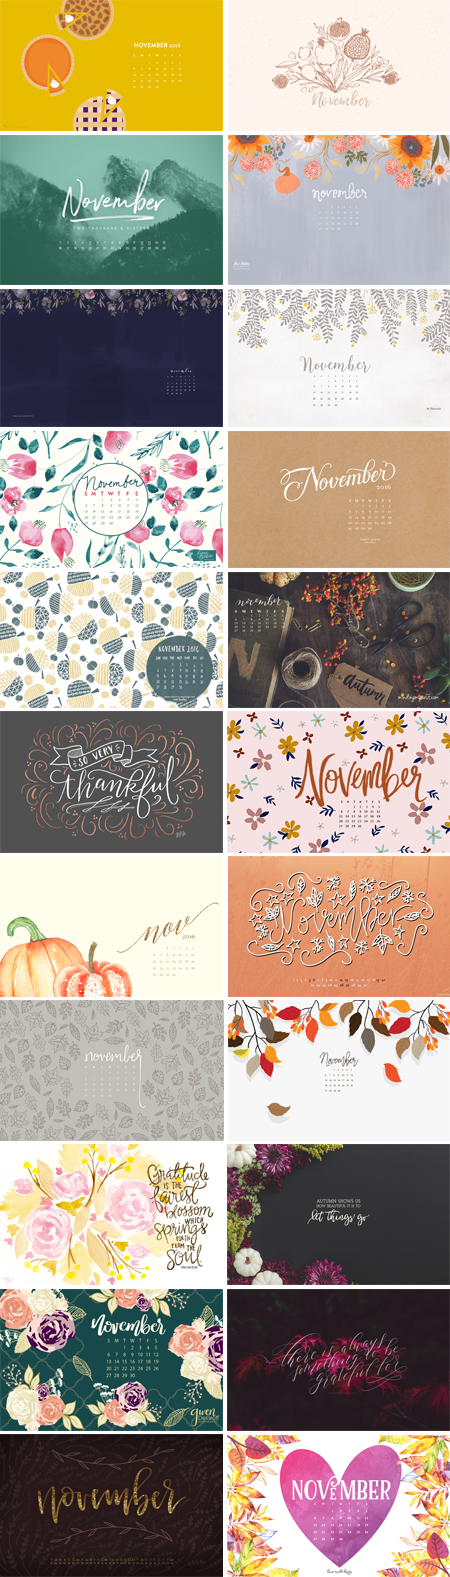 // November 2016 Wallpapers Round-up